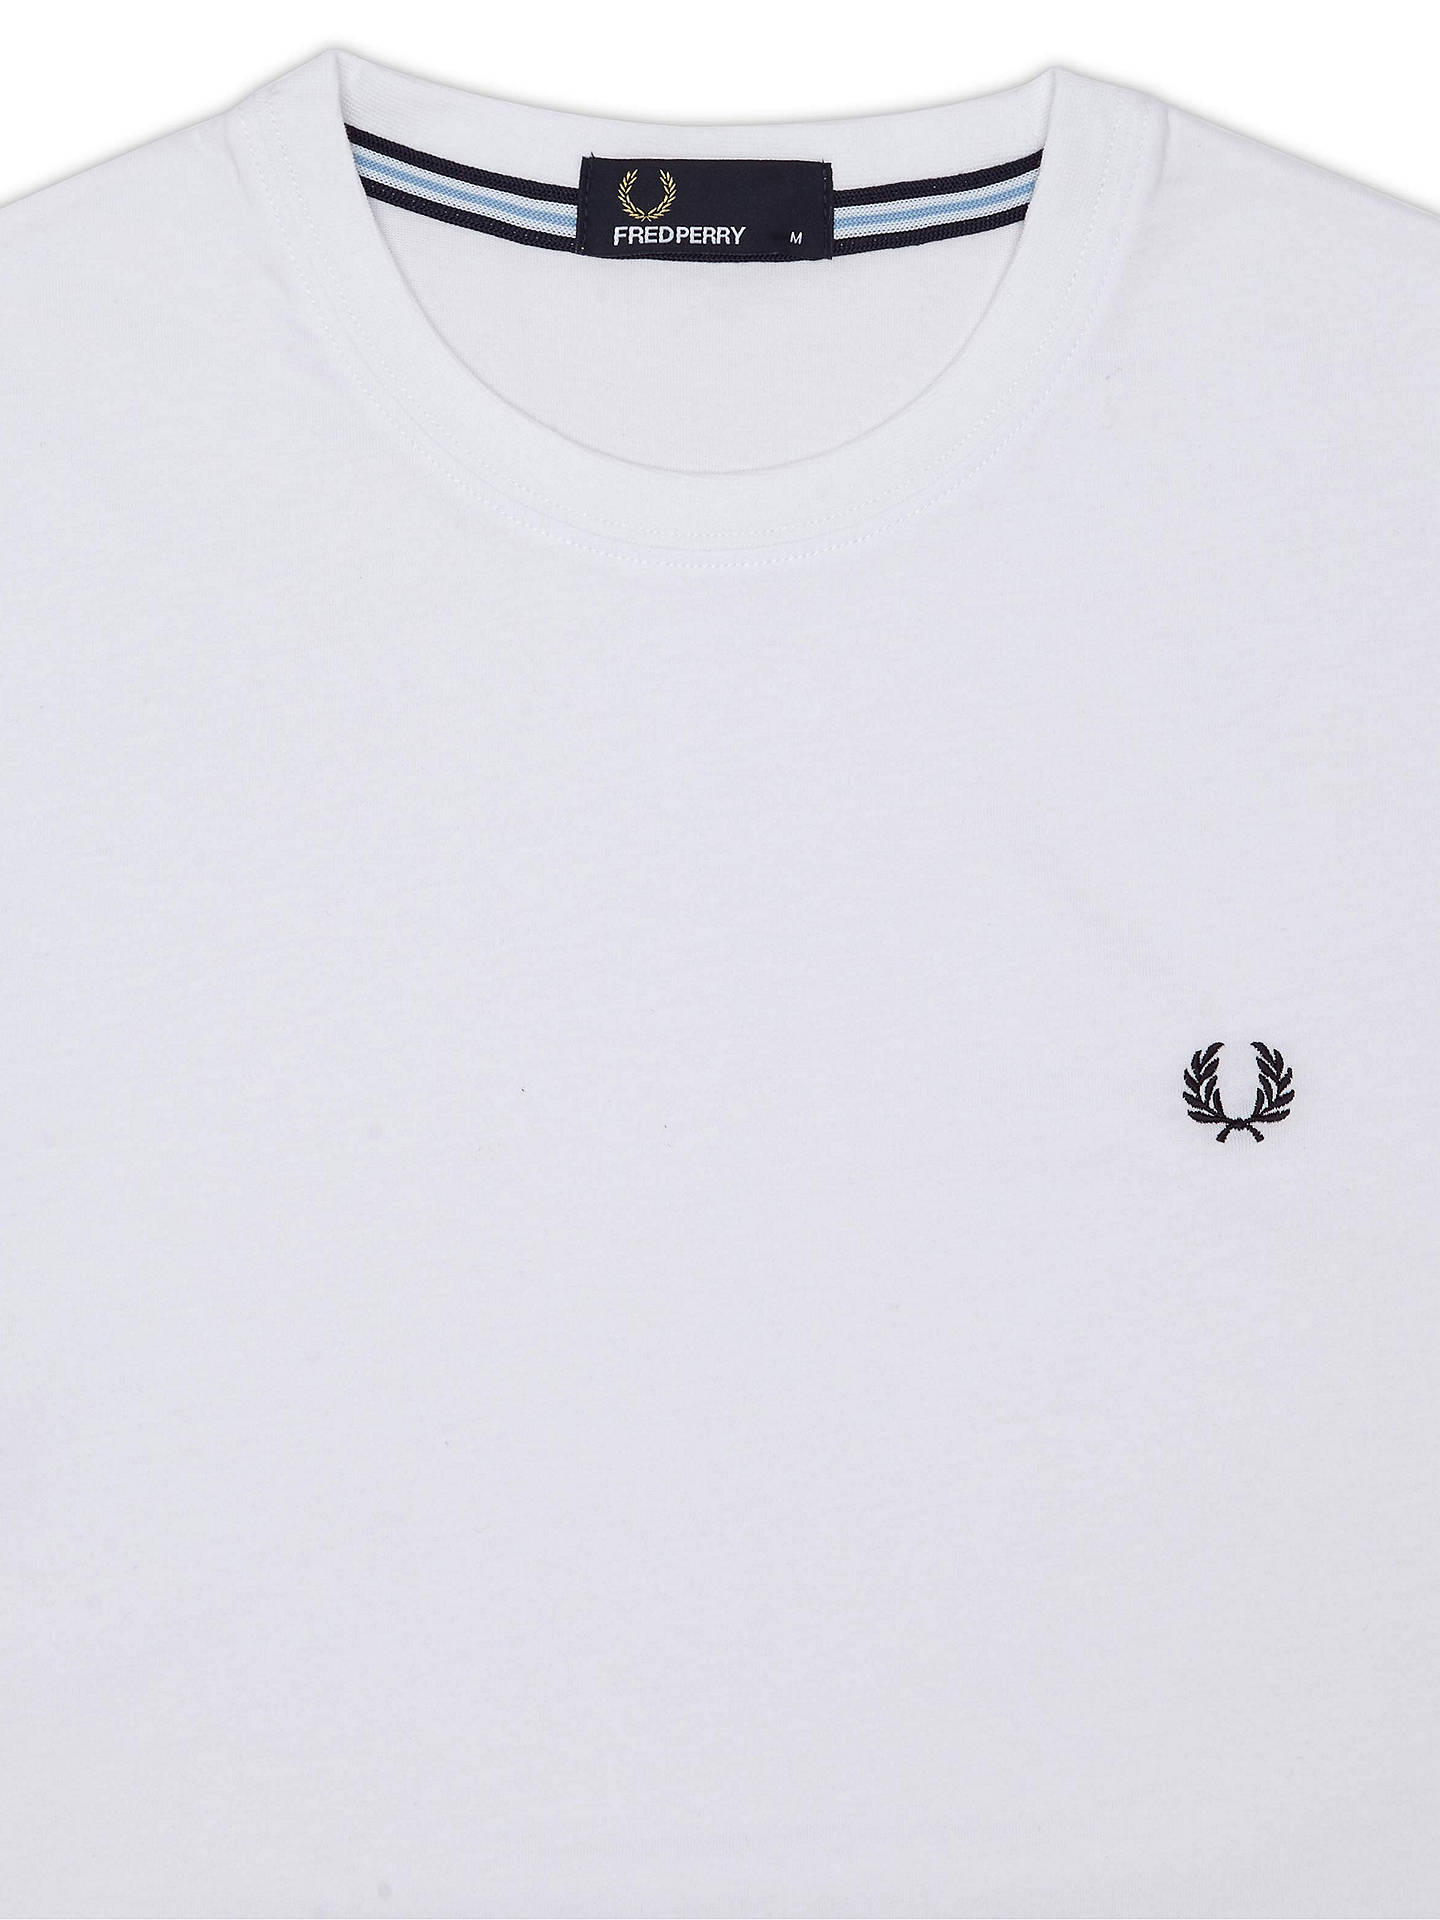 950d98e25562 ... Buy Fred Perry Crew Neck Cotton T-Shirt, White, S Online at johnlewis